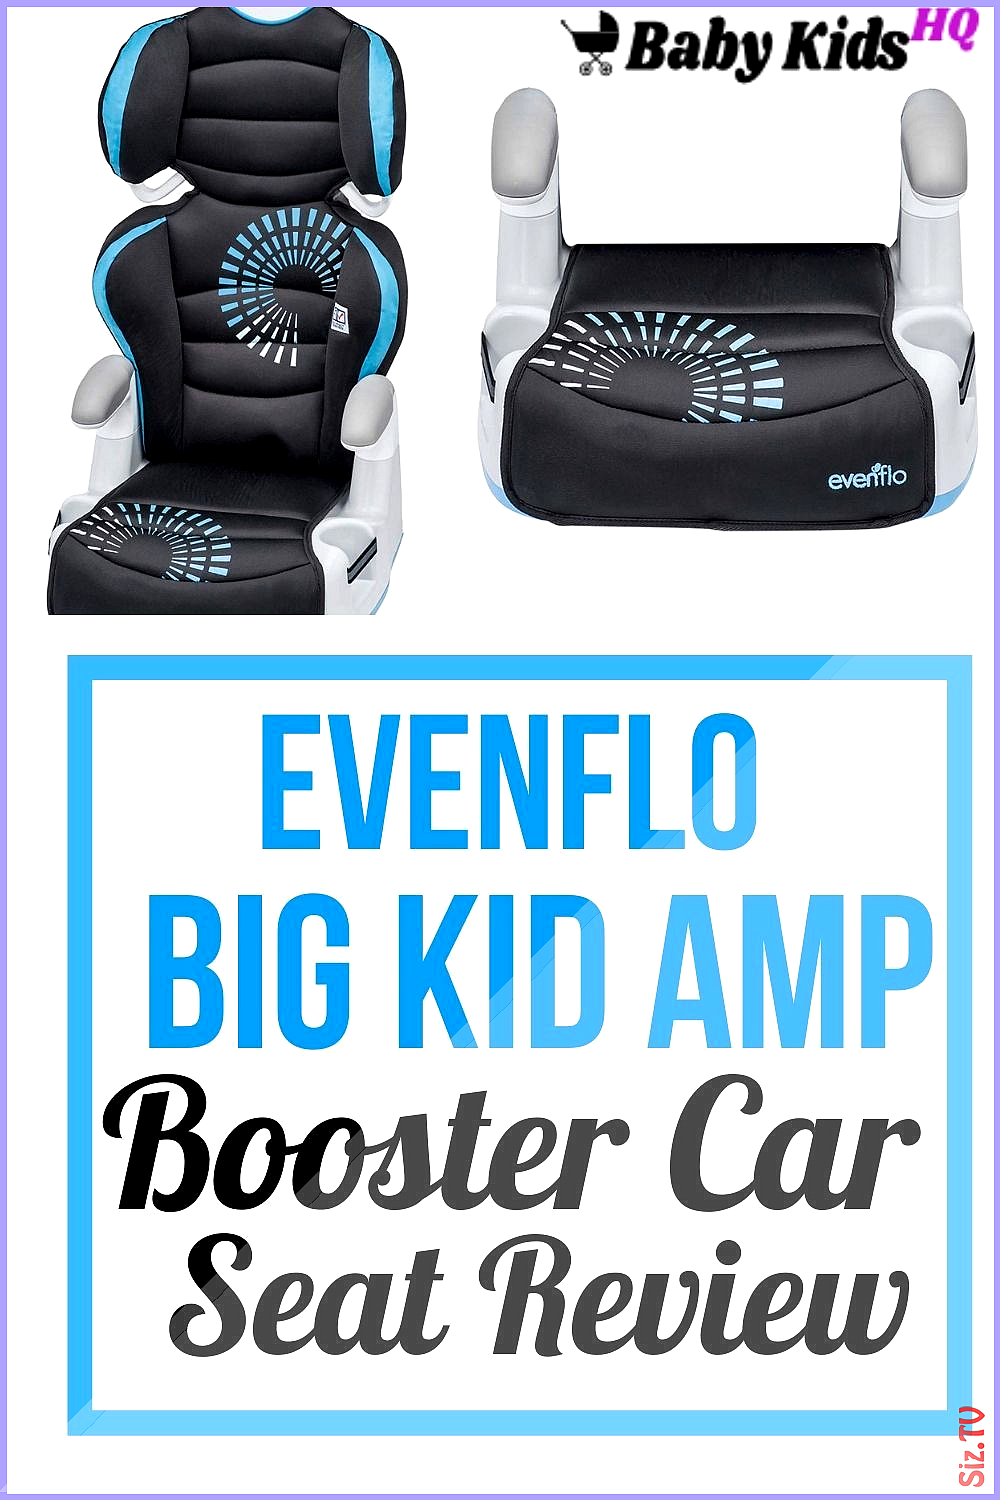 Evenflo Big Kid Amp Booster Car Seat Review in 2020 Car